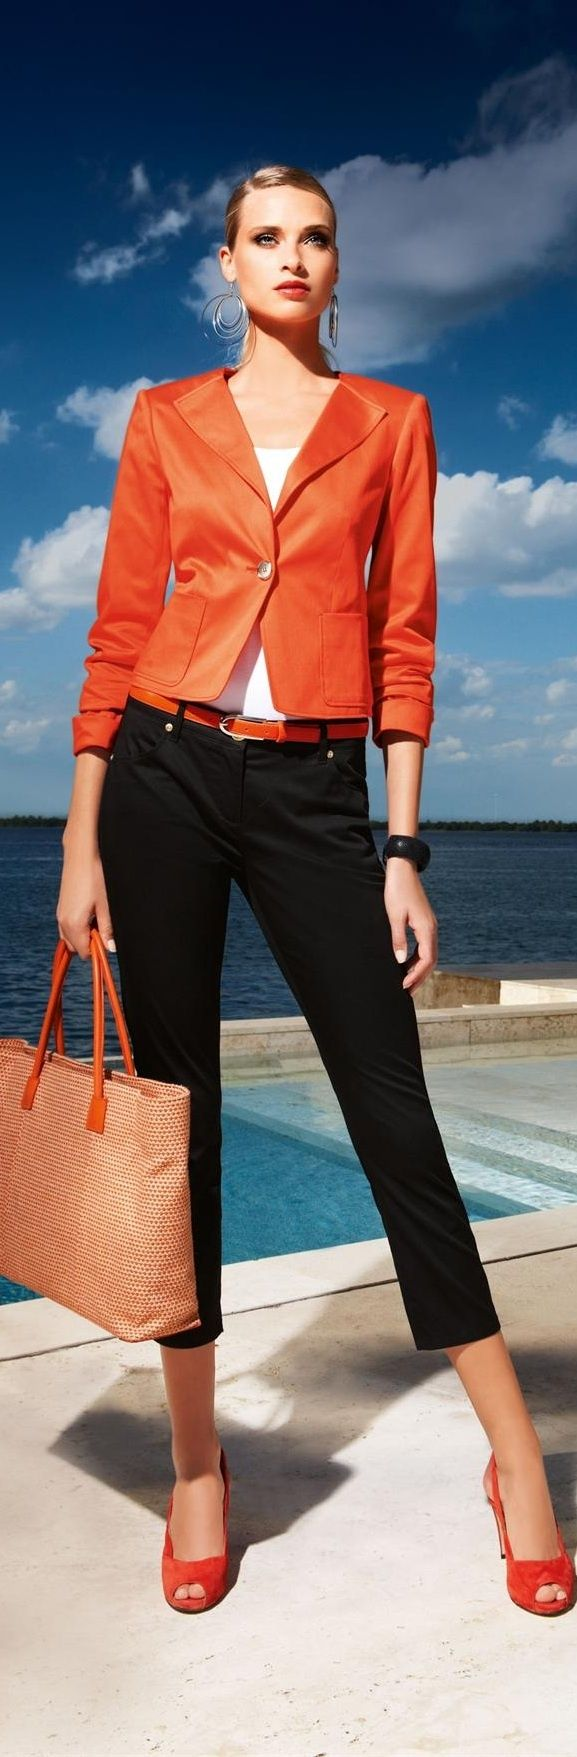 A black and orange outfit that doesn't scream Halloween. Like it!